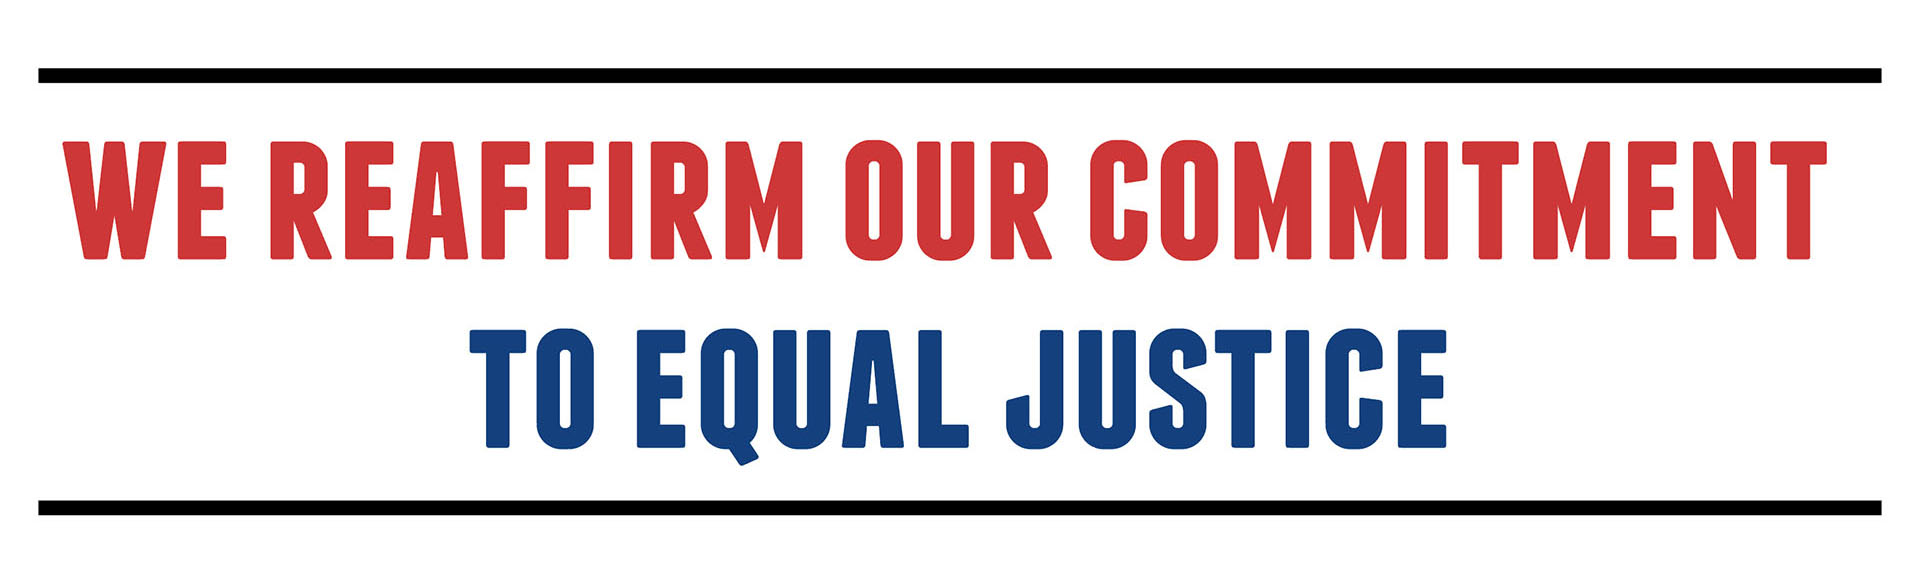 We Reaffirm Our Commitment to Equal Justice